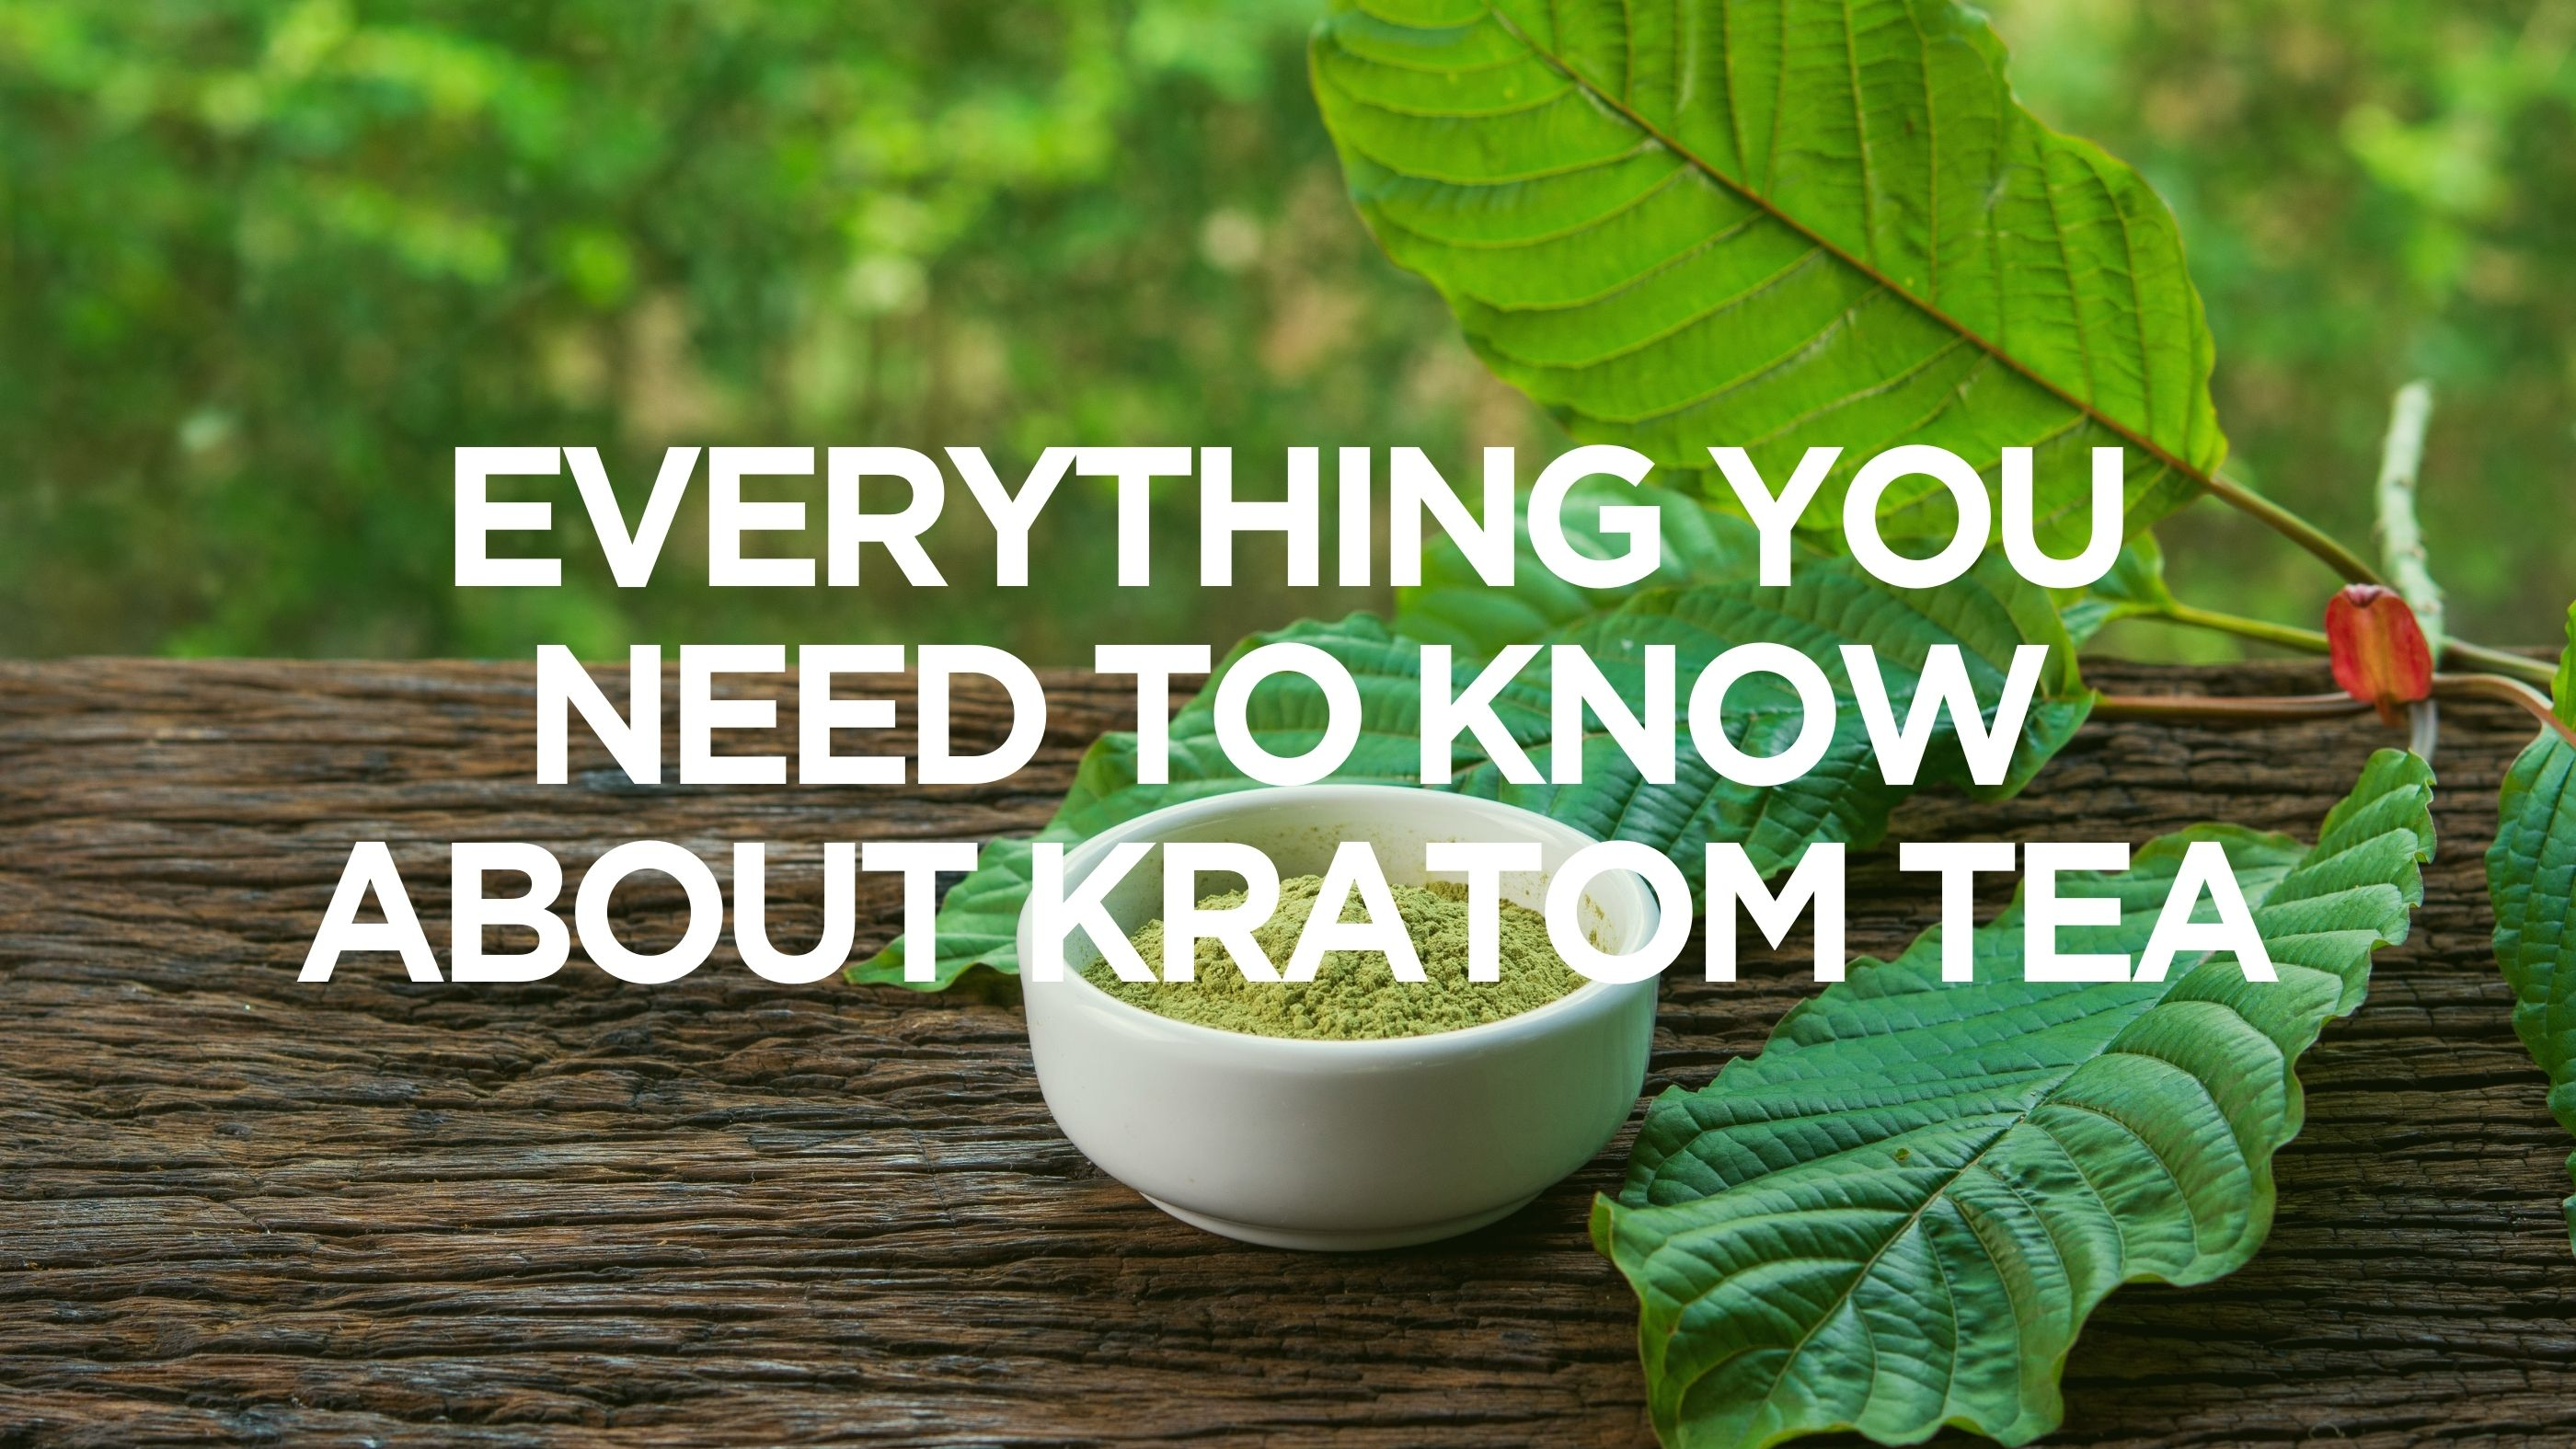 everything-you-need-to-know-about-kratom-tea